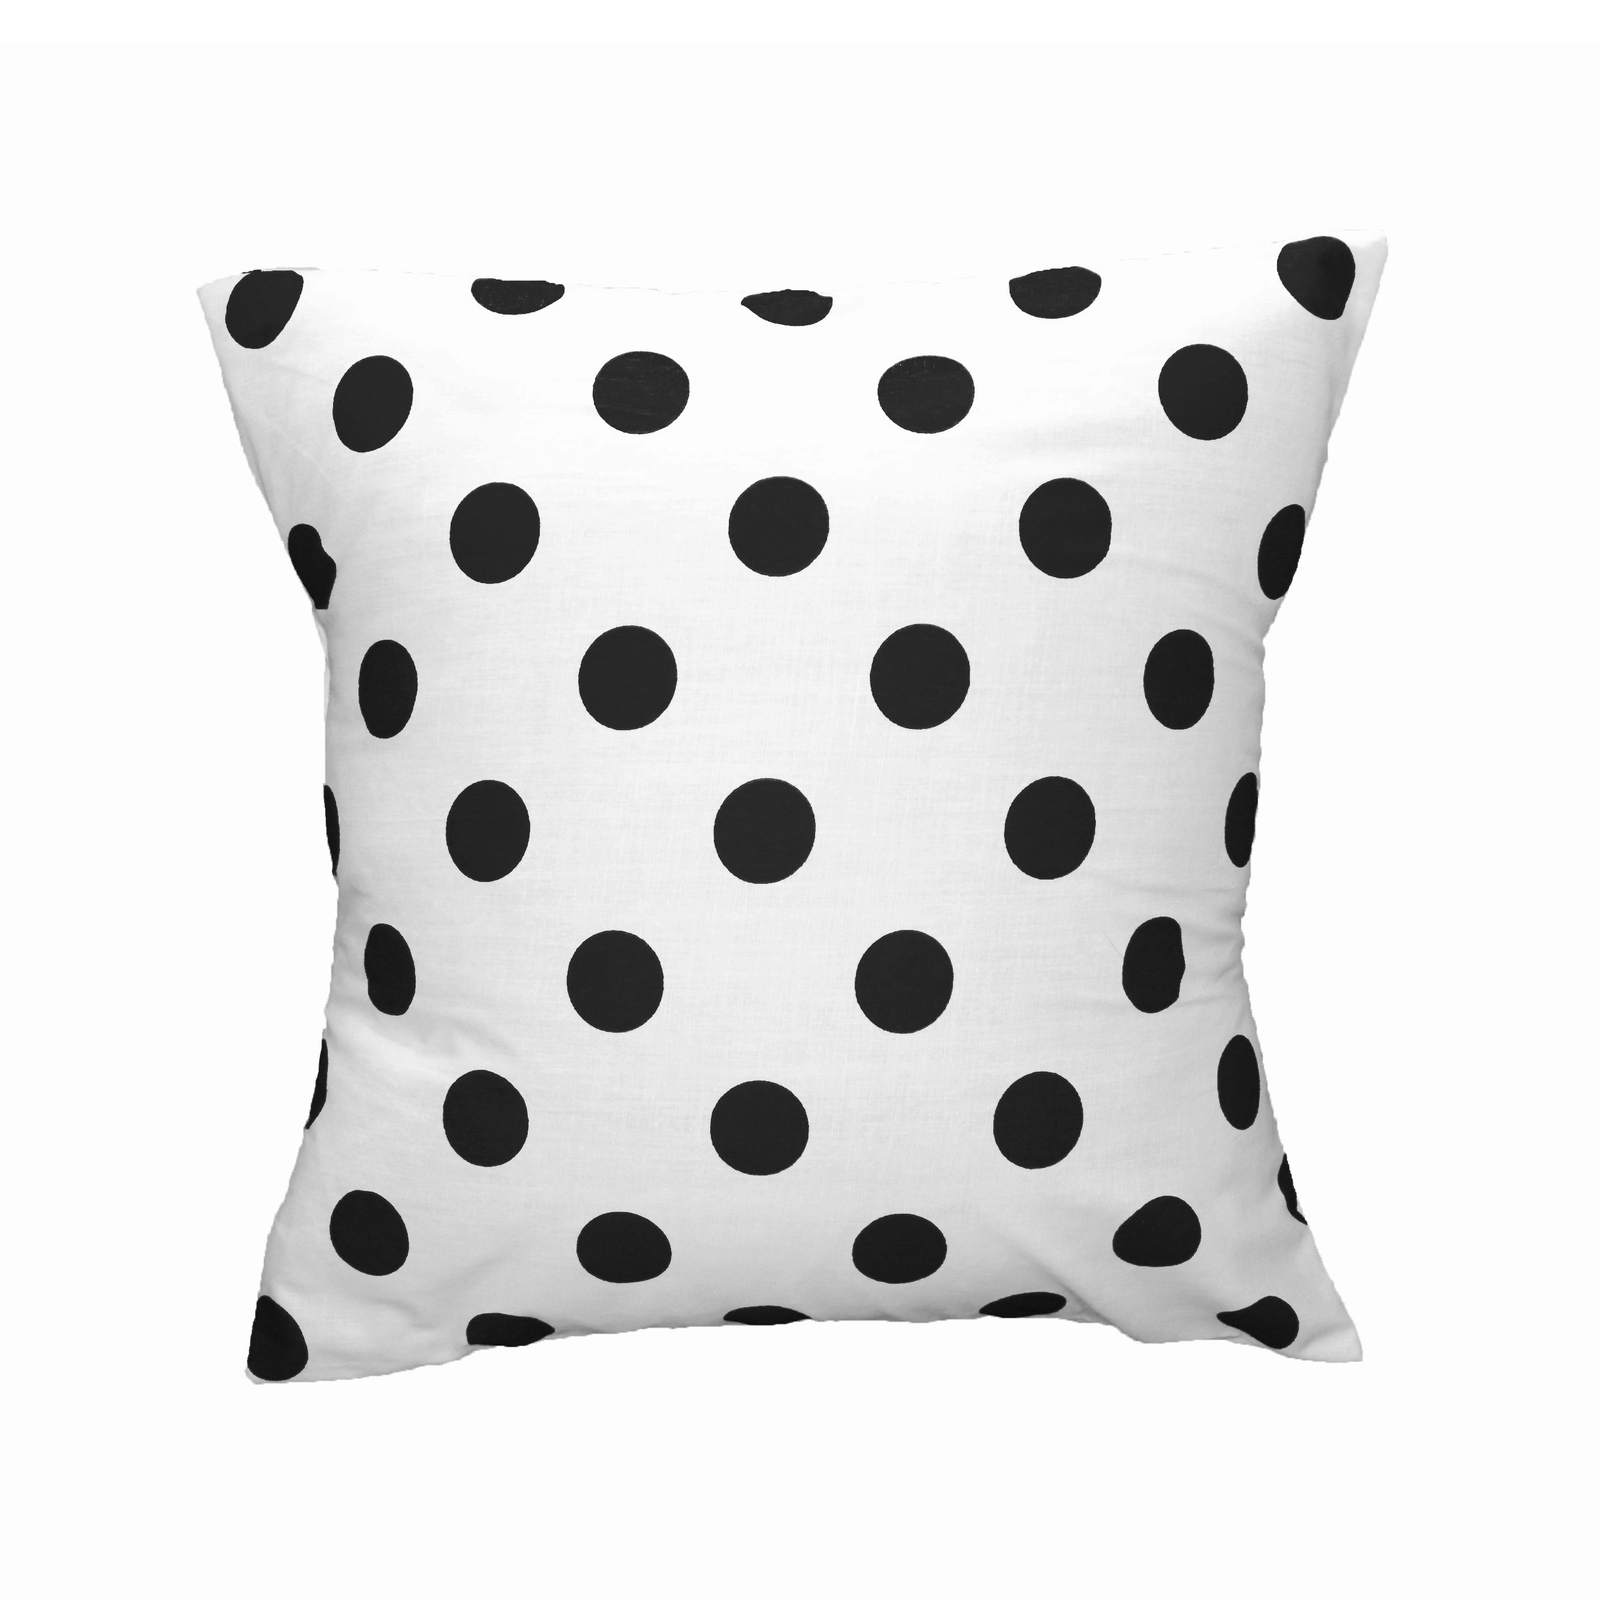 Primary image for Cotton Polka Dots Decorative Throw Pillow/Sham Cushion Cover Black On White